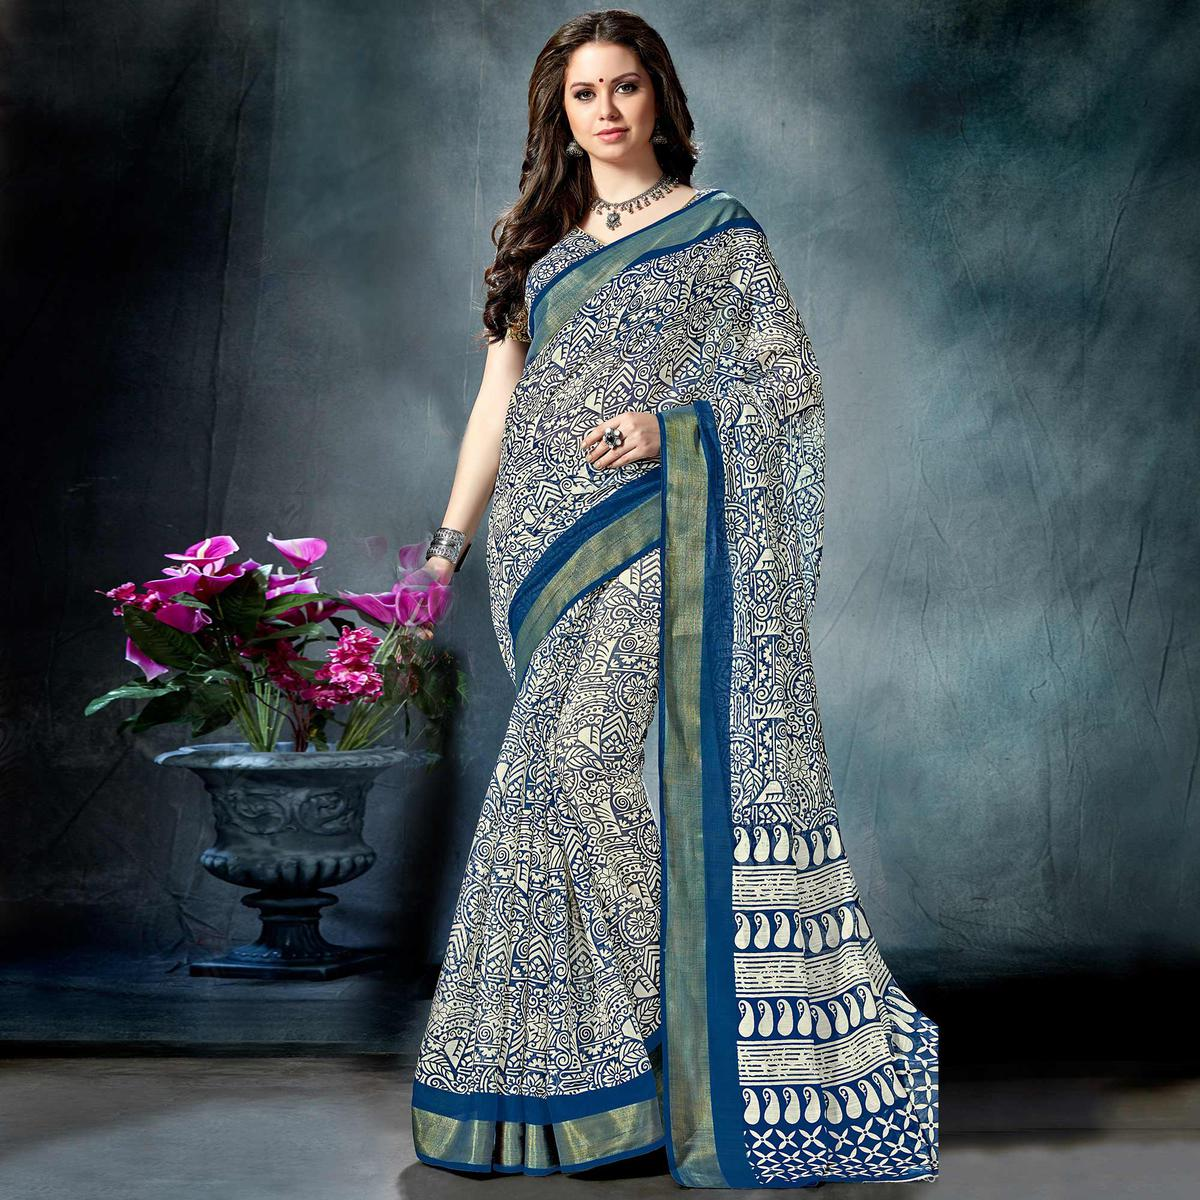 Strange Off-White-Blue Colored Casual Printed Pure Cotton Saree